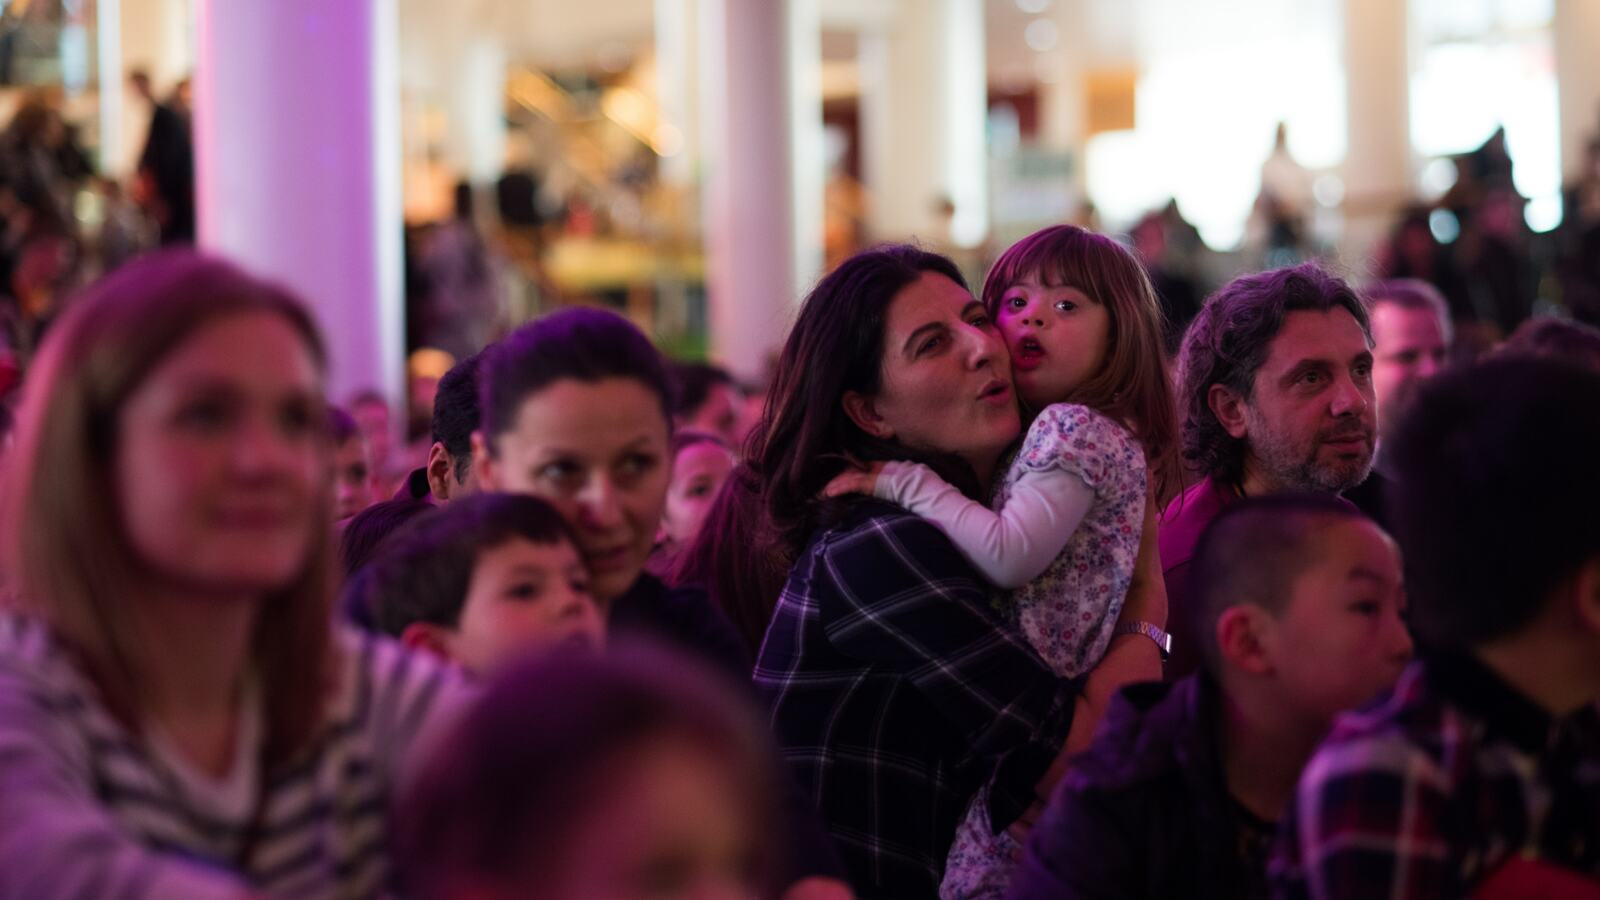 Families watching a performance